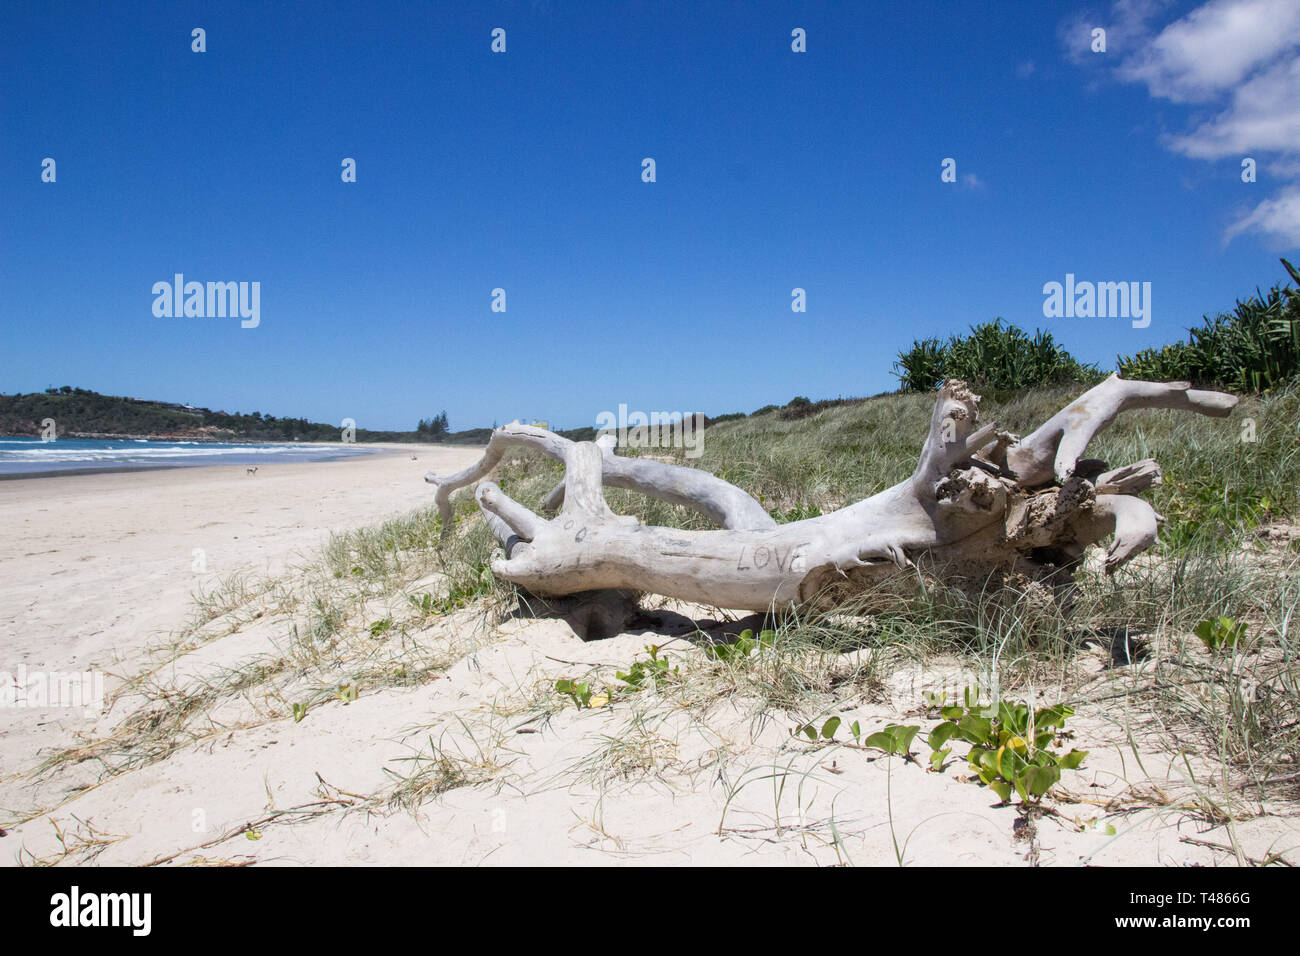 Baumstamm am Strand in Australien, all you need ist love Beschriftung - Stock Image